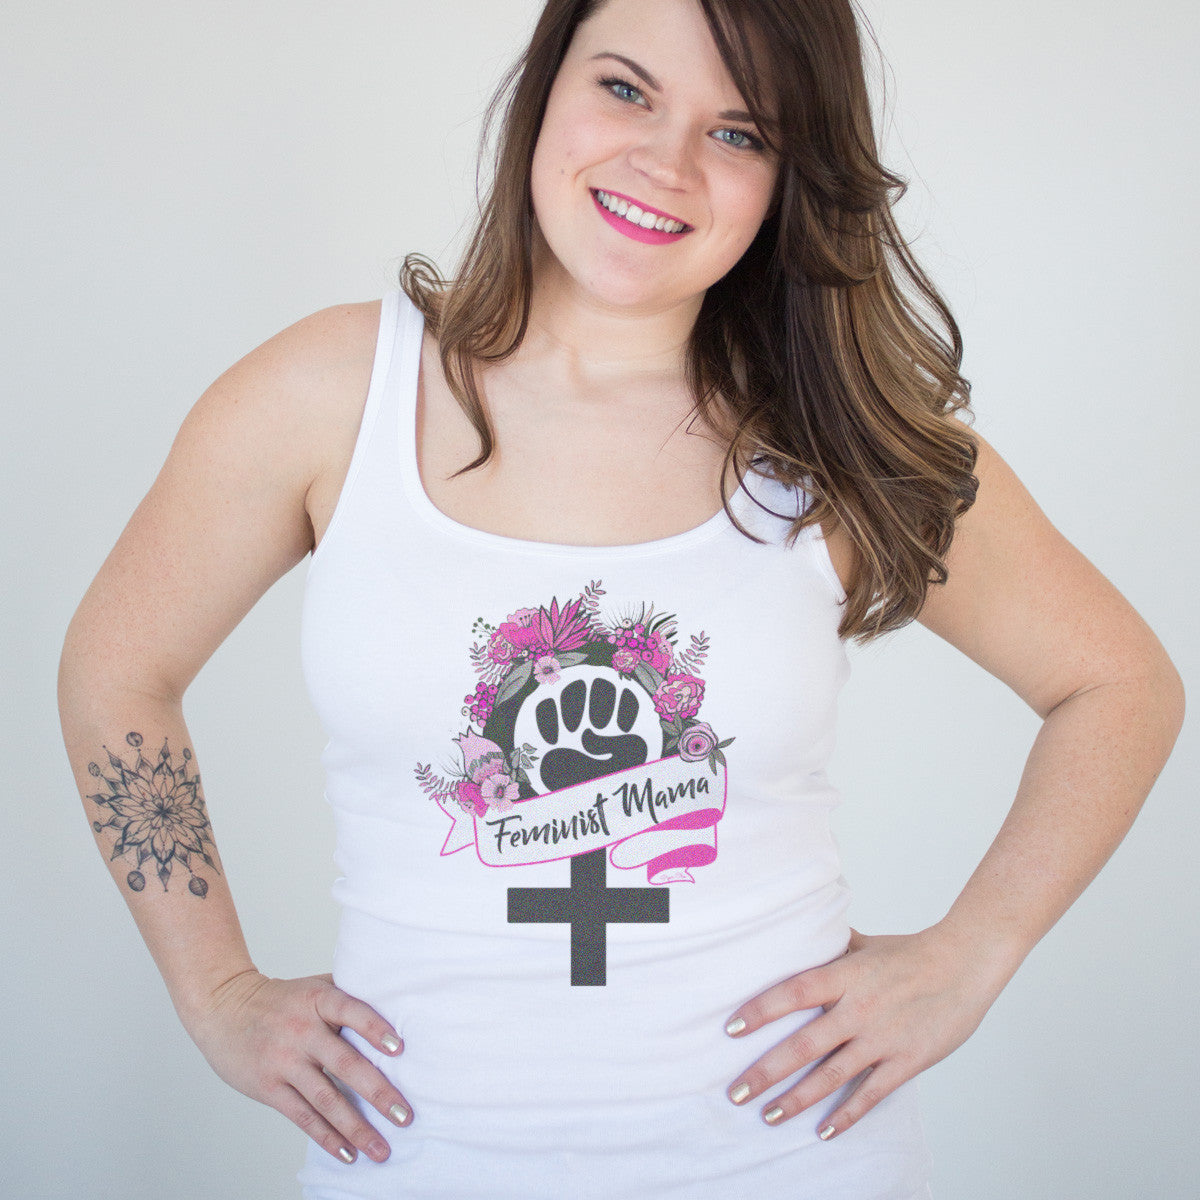 Feminist Mama Ladies' Tank - pipercleo.com